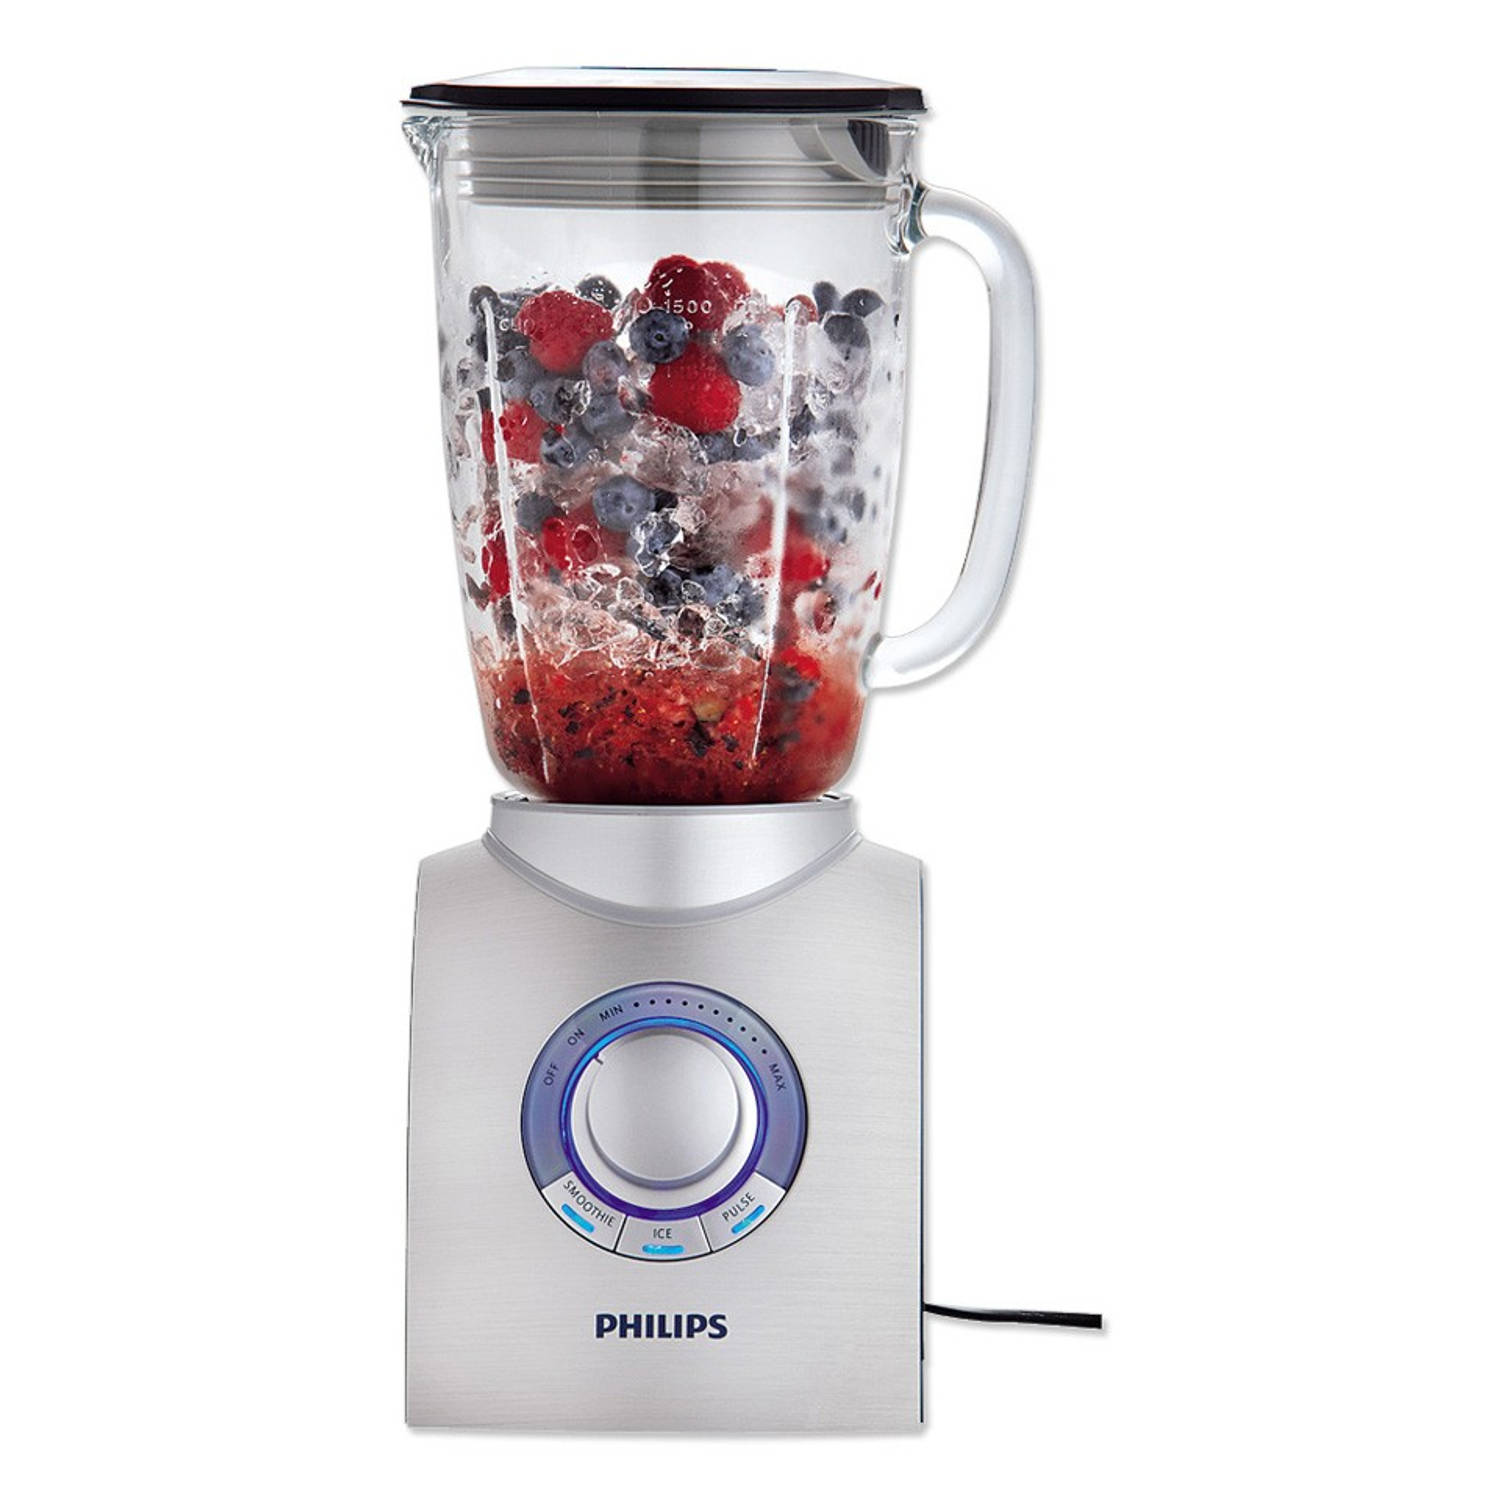 Philips HR2094/00 blender